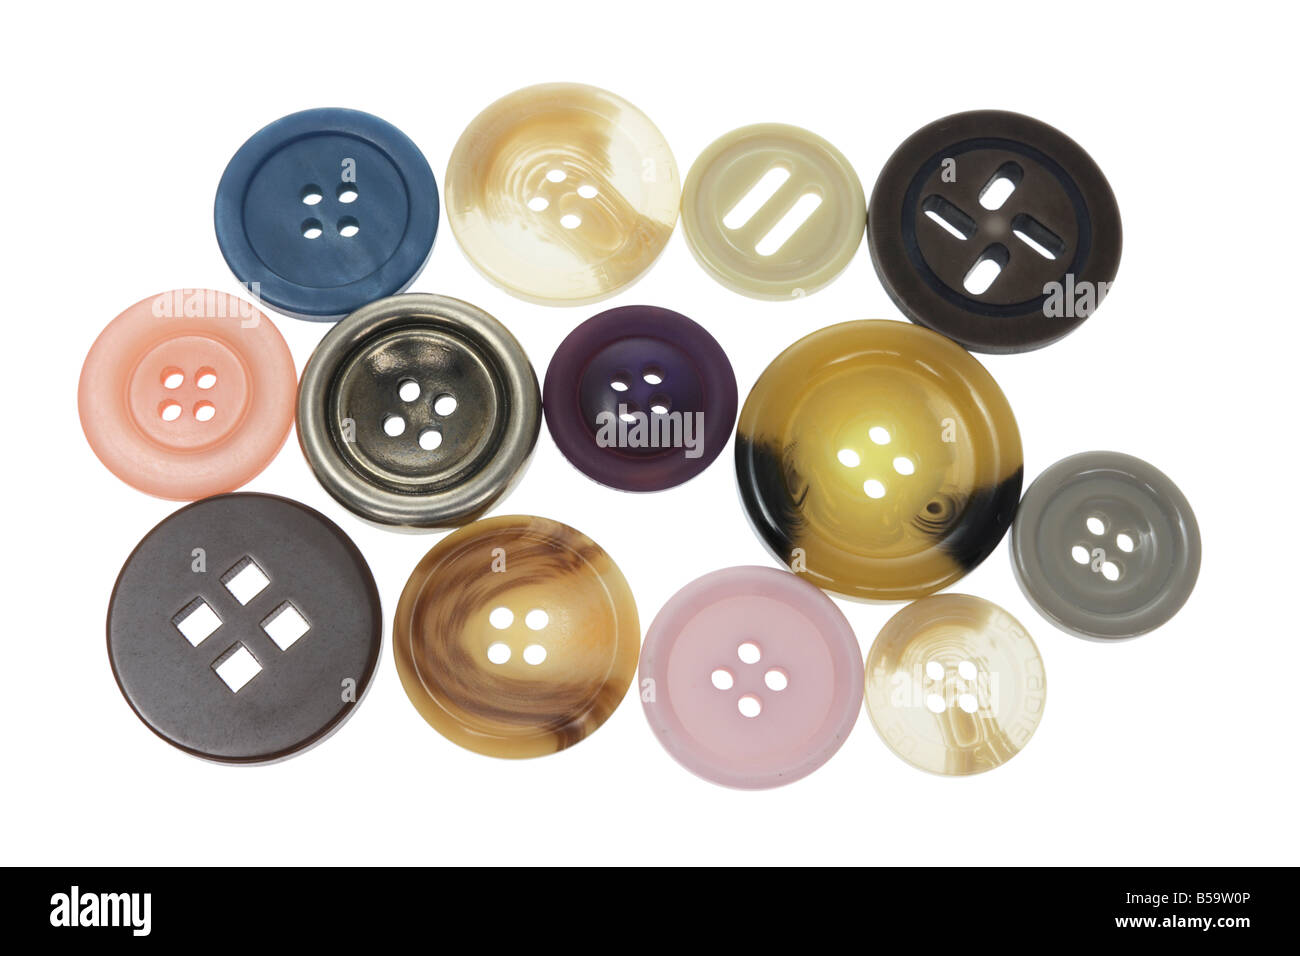 Assortment of Buttons - Stock Image